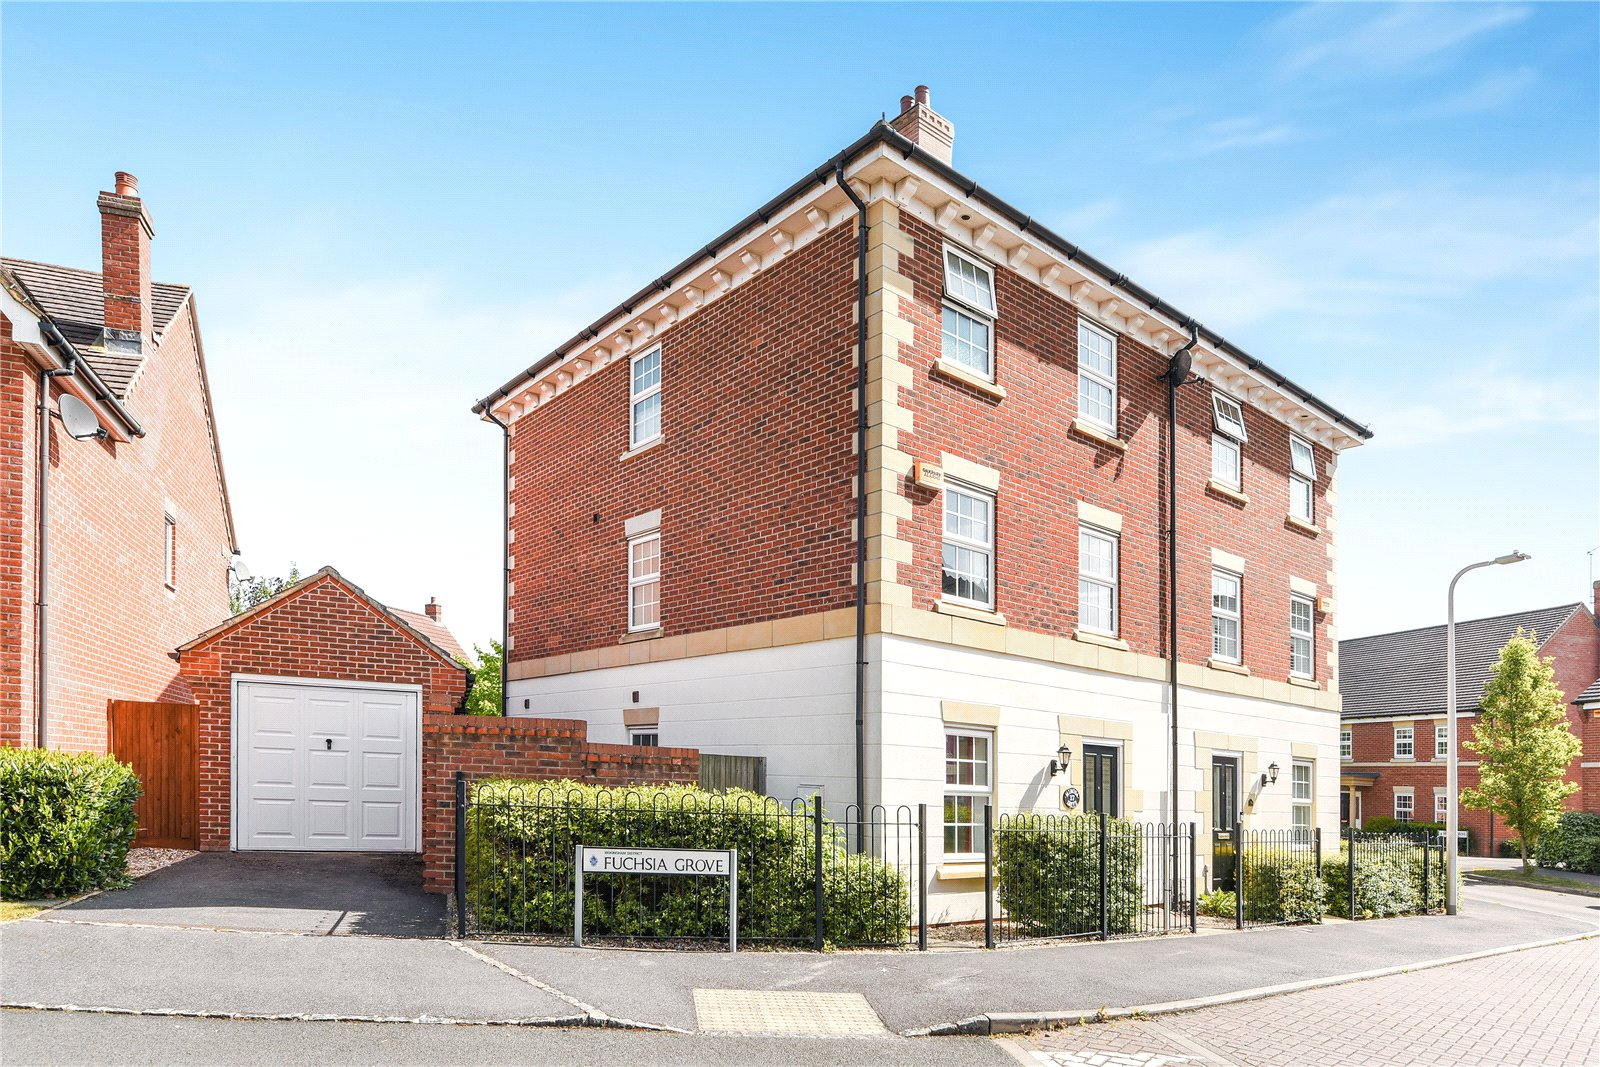 5 Bedrooms Semi Detached House for sale in Mimosa Drive, Shinfield, Reading, Berkshire, RG2